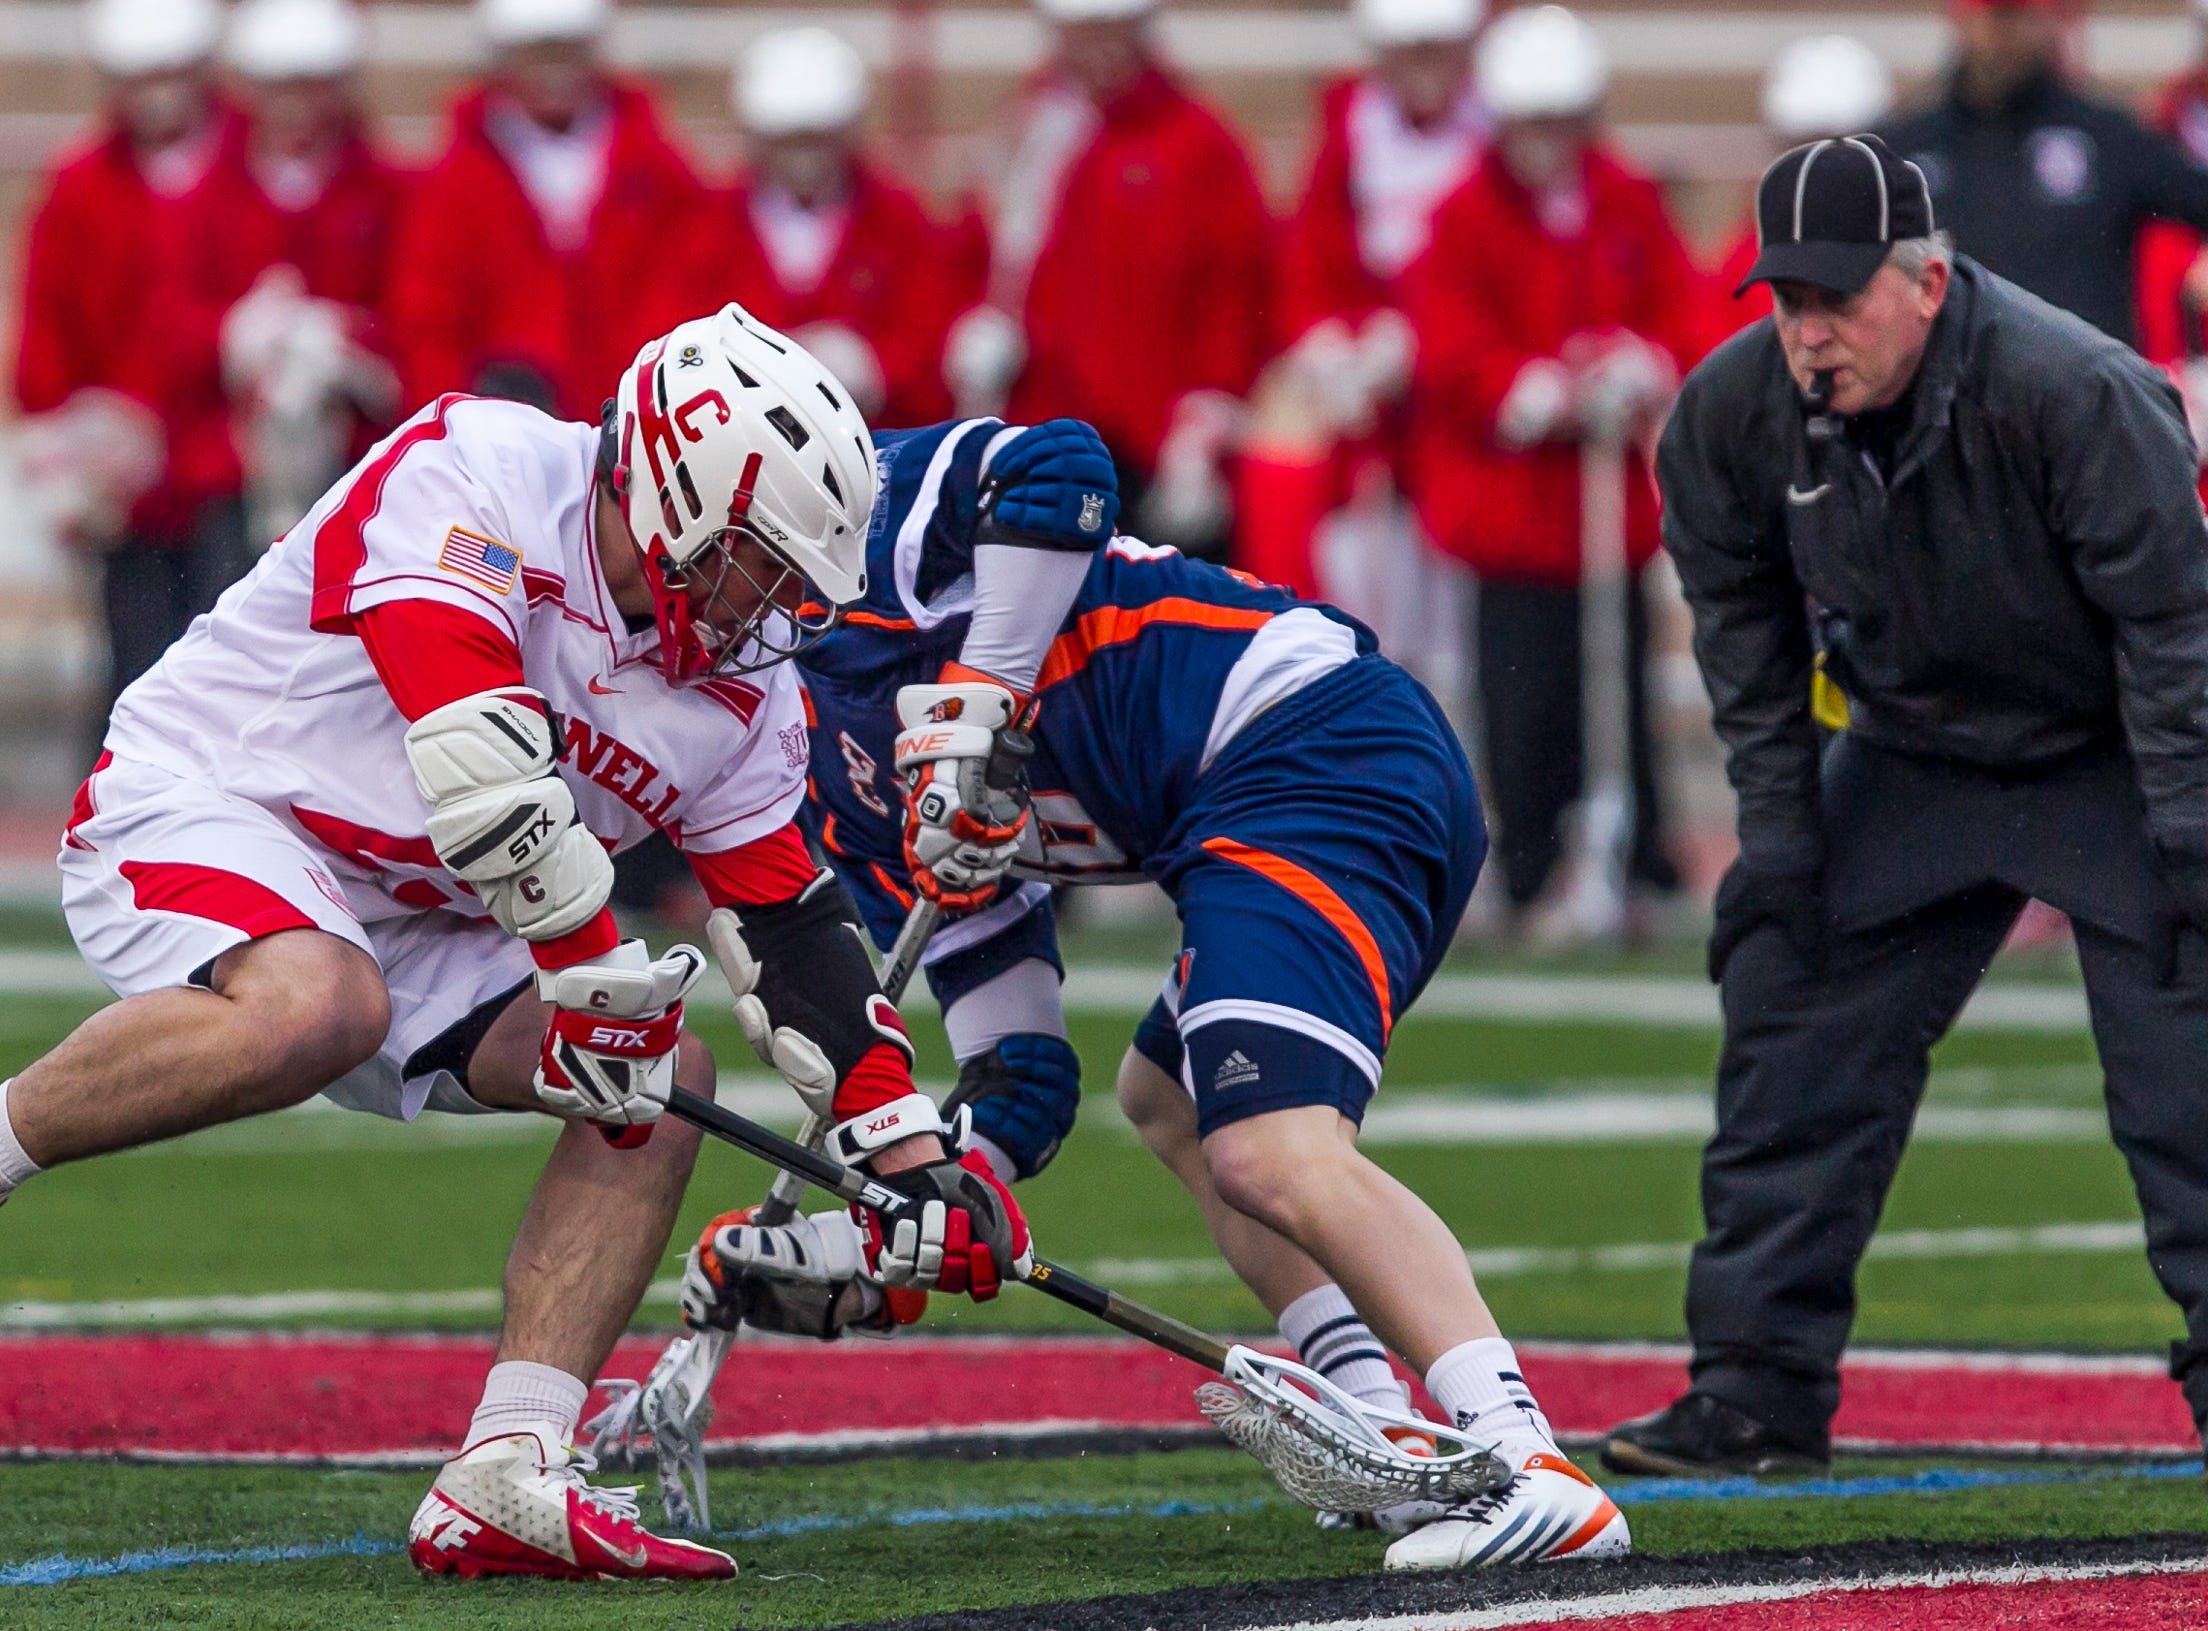 2013: Cornell vs Bucknell in college mens lacrosse Tuesday afternoon.